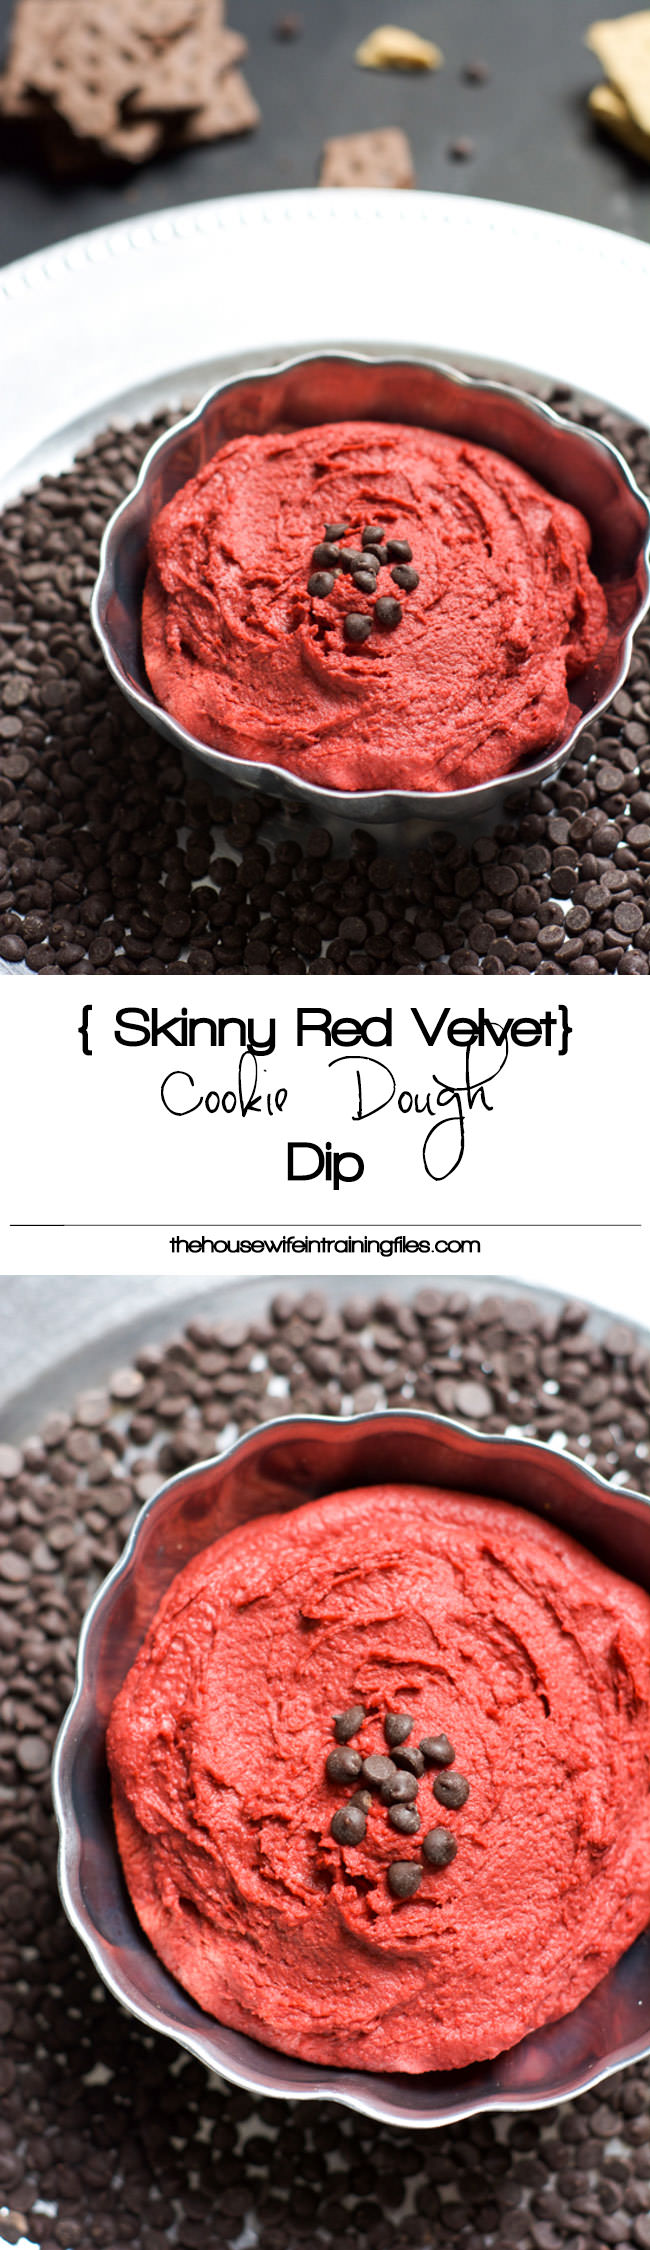 Skinny Red Velvet Cookie Dough Dip is secretly healthy that is full of cookie dough flavor but none of the guilt! A dessert you can feel good about indulging in! #cookiedoughdip #healthy #skinny #redvelvet